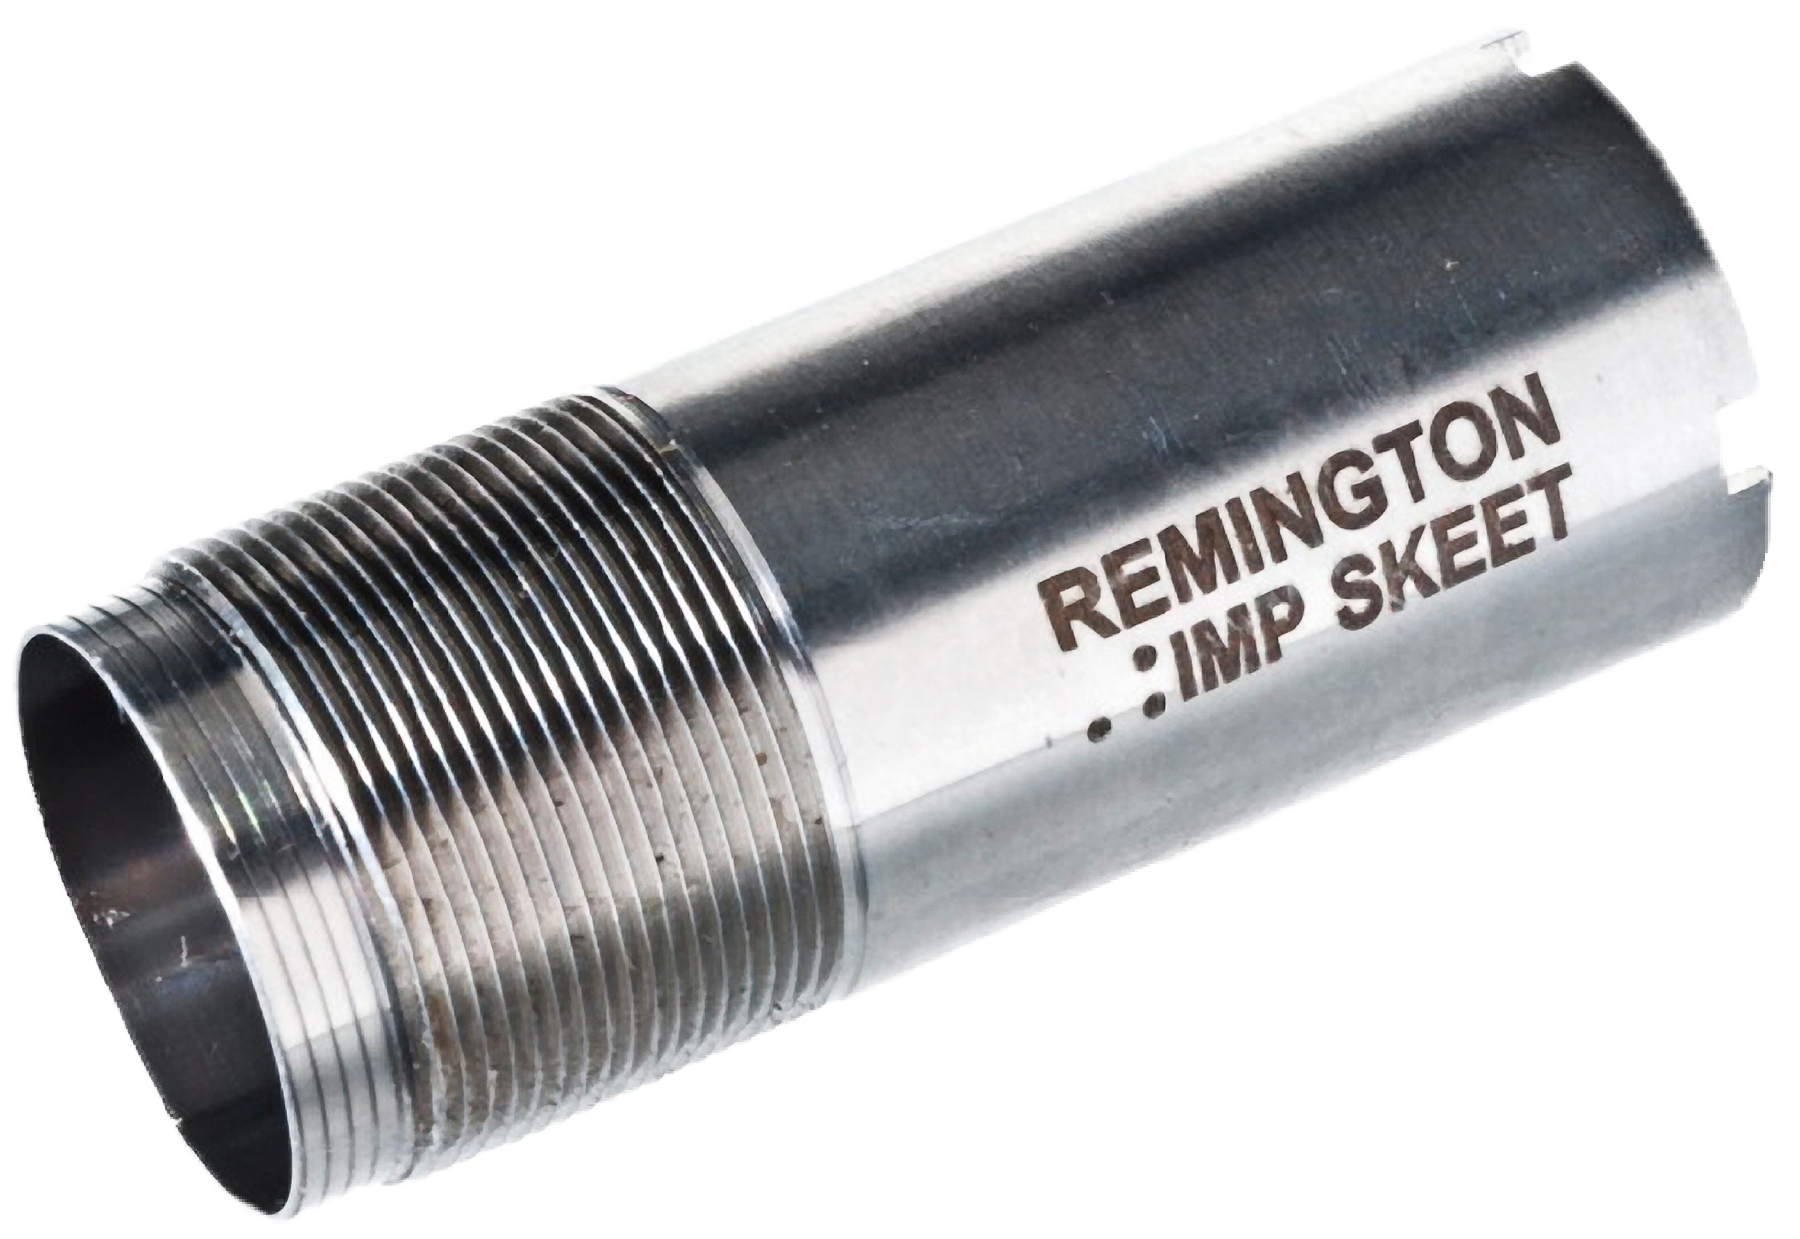 Remington 19608 Rem Choke Tube 12 GA Improved Skeet Stainless